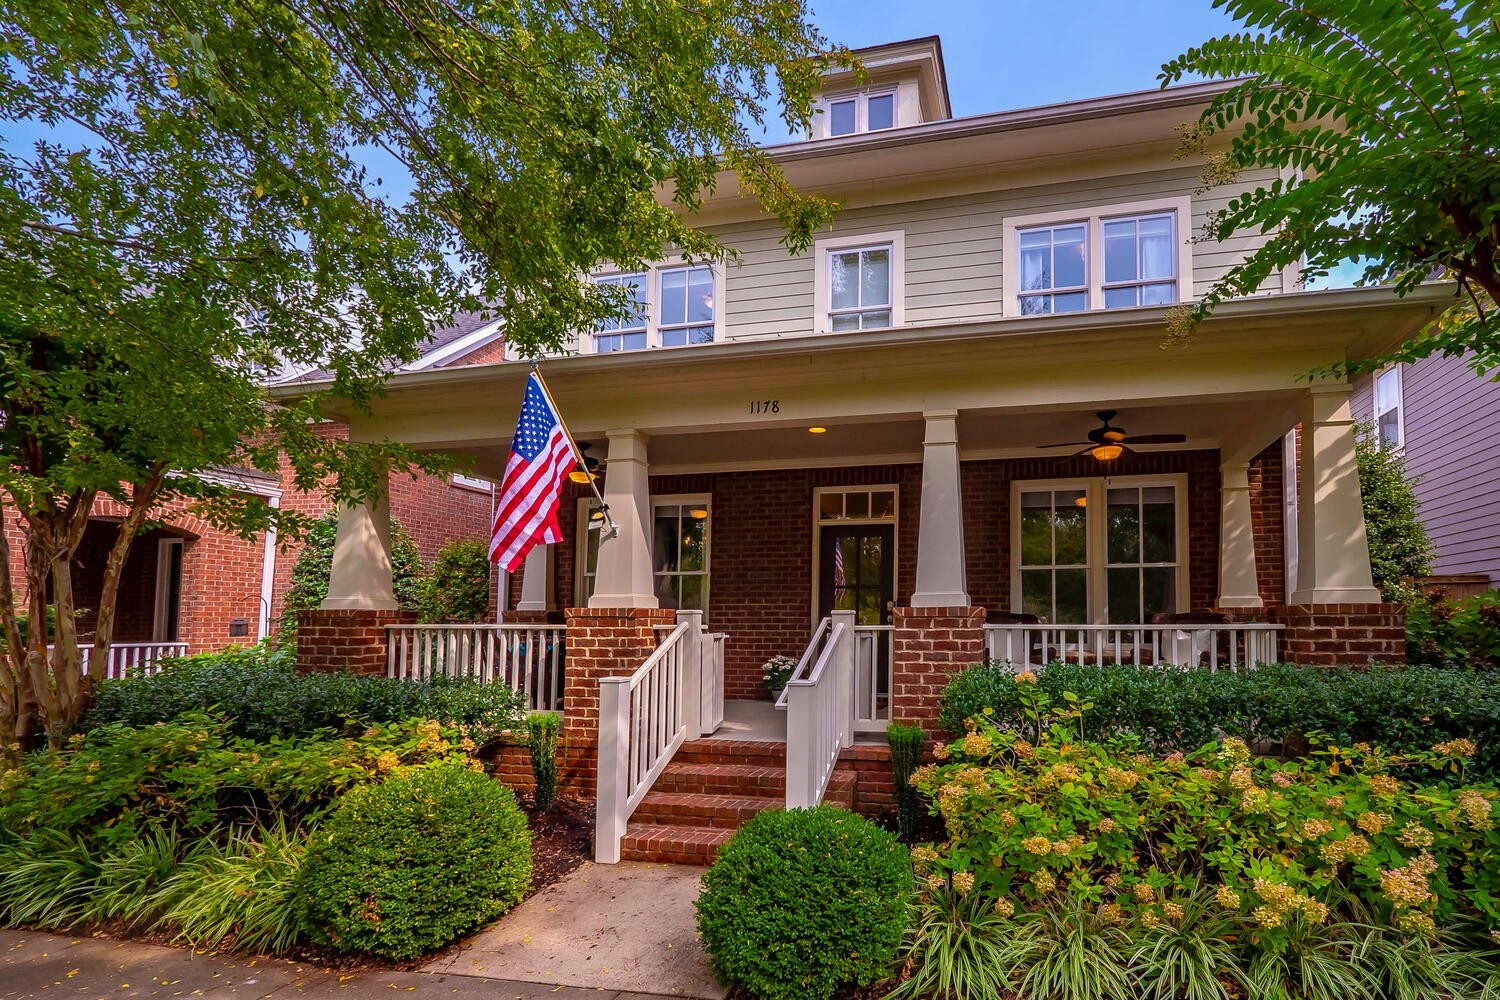 Charming craftsman style home overlooking beautiful green space! Centrally located - walk to everything! Spacious kitchen w/ Double ovens & large marble island! Completely renovated master bath! 8 ft. doors & custom closets throughout! 3BR's 2bath upstairsin main house w/ bonus room!  Massive studio (5th BR) over garage could be in-law suite, office, man cave, or extra income potential w/ a sep. entrance. Lg. year round screened in porch! Garage has a large golf cart space w/ separate entrance.